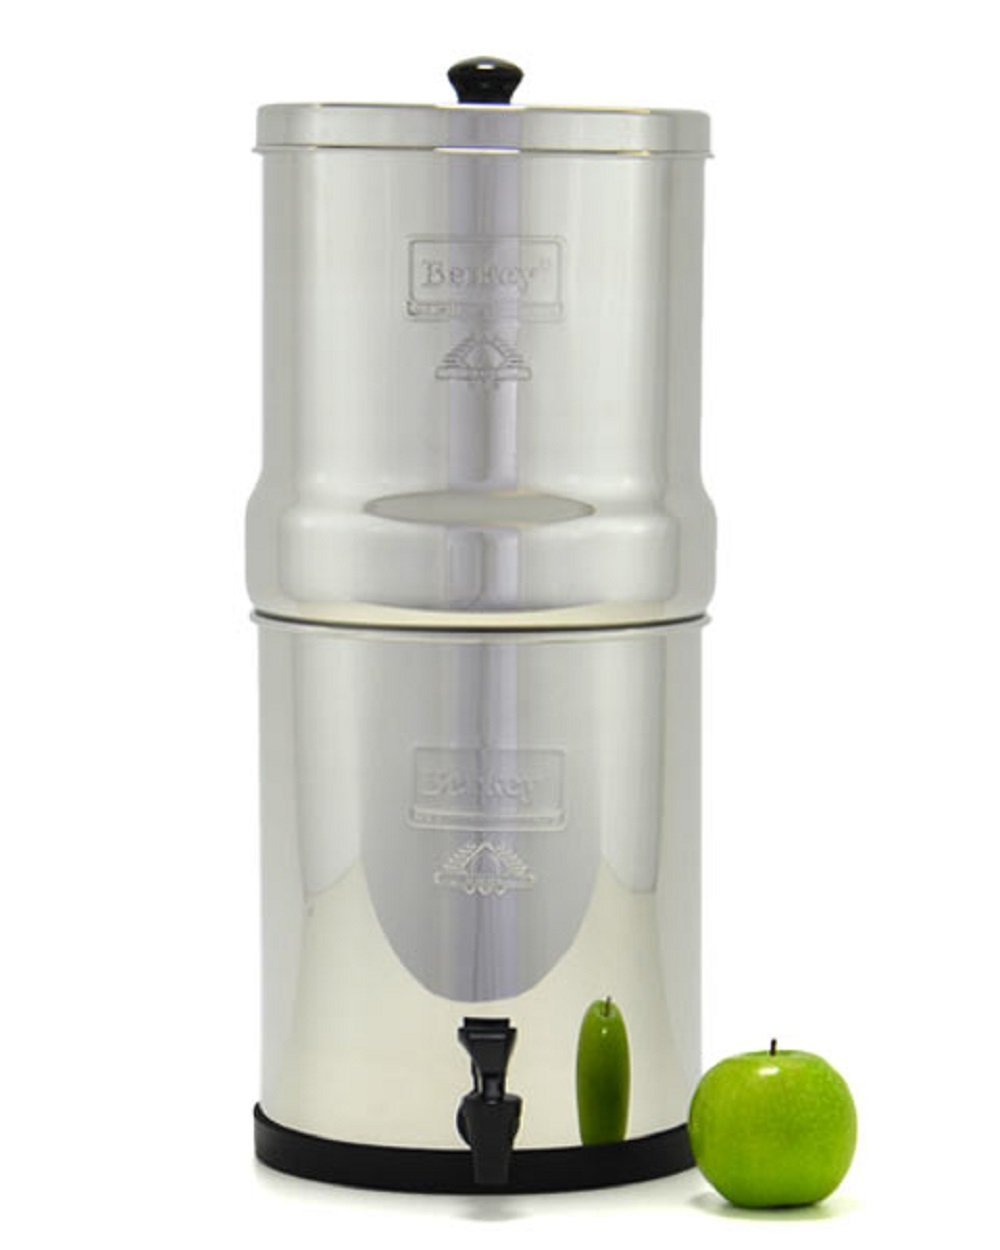 Berkey Water Filter System with 2 Black Berkey Elements and Berkey SG-7.5 Glass Water Level Spigot